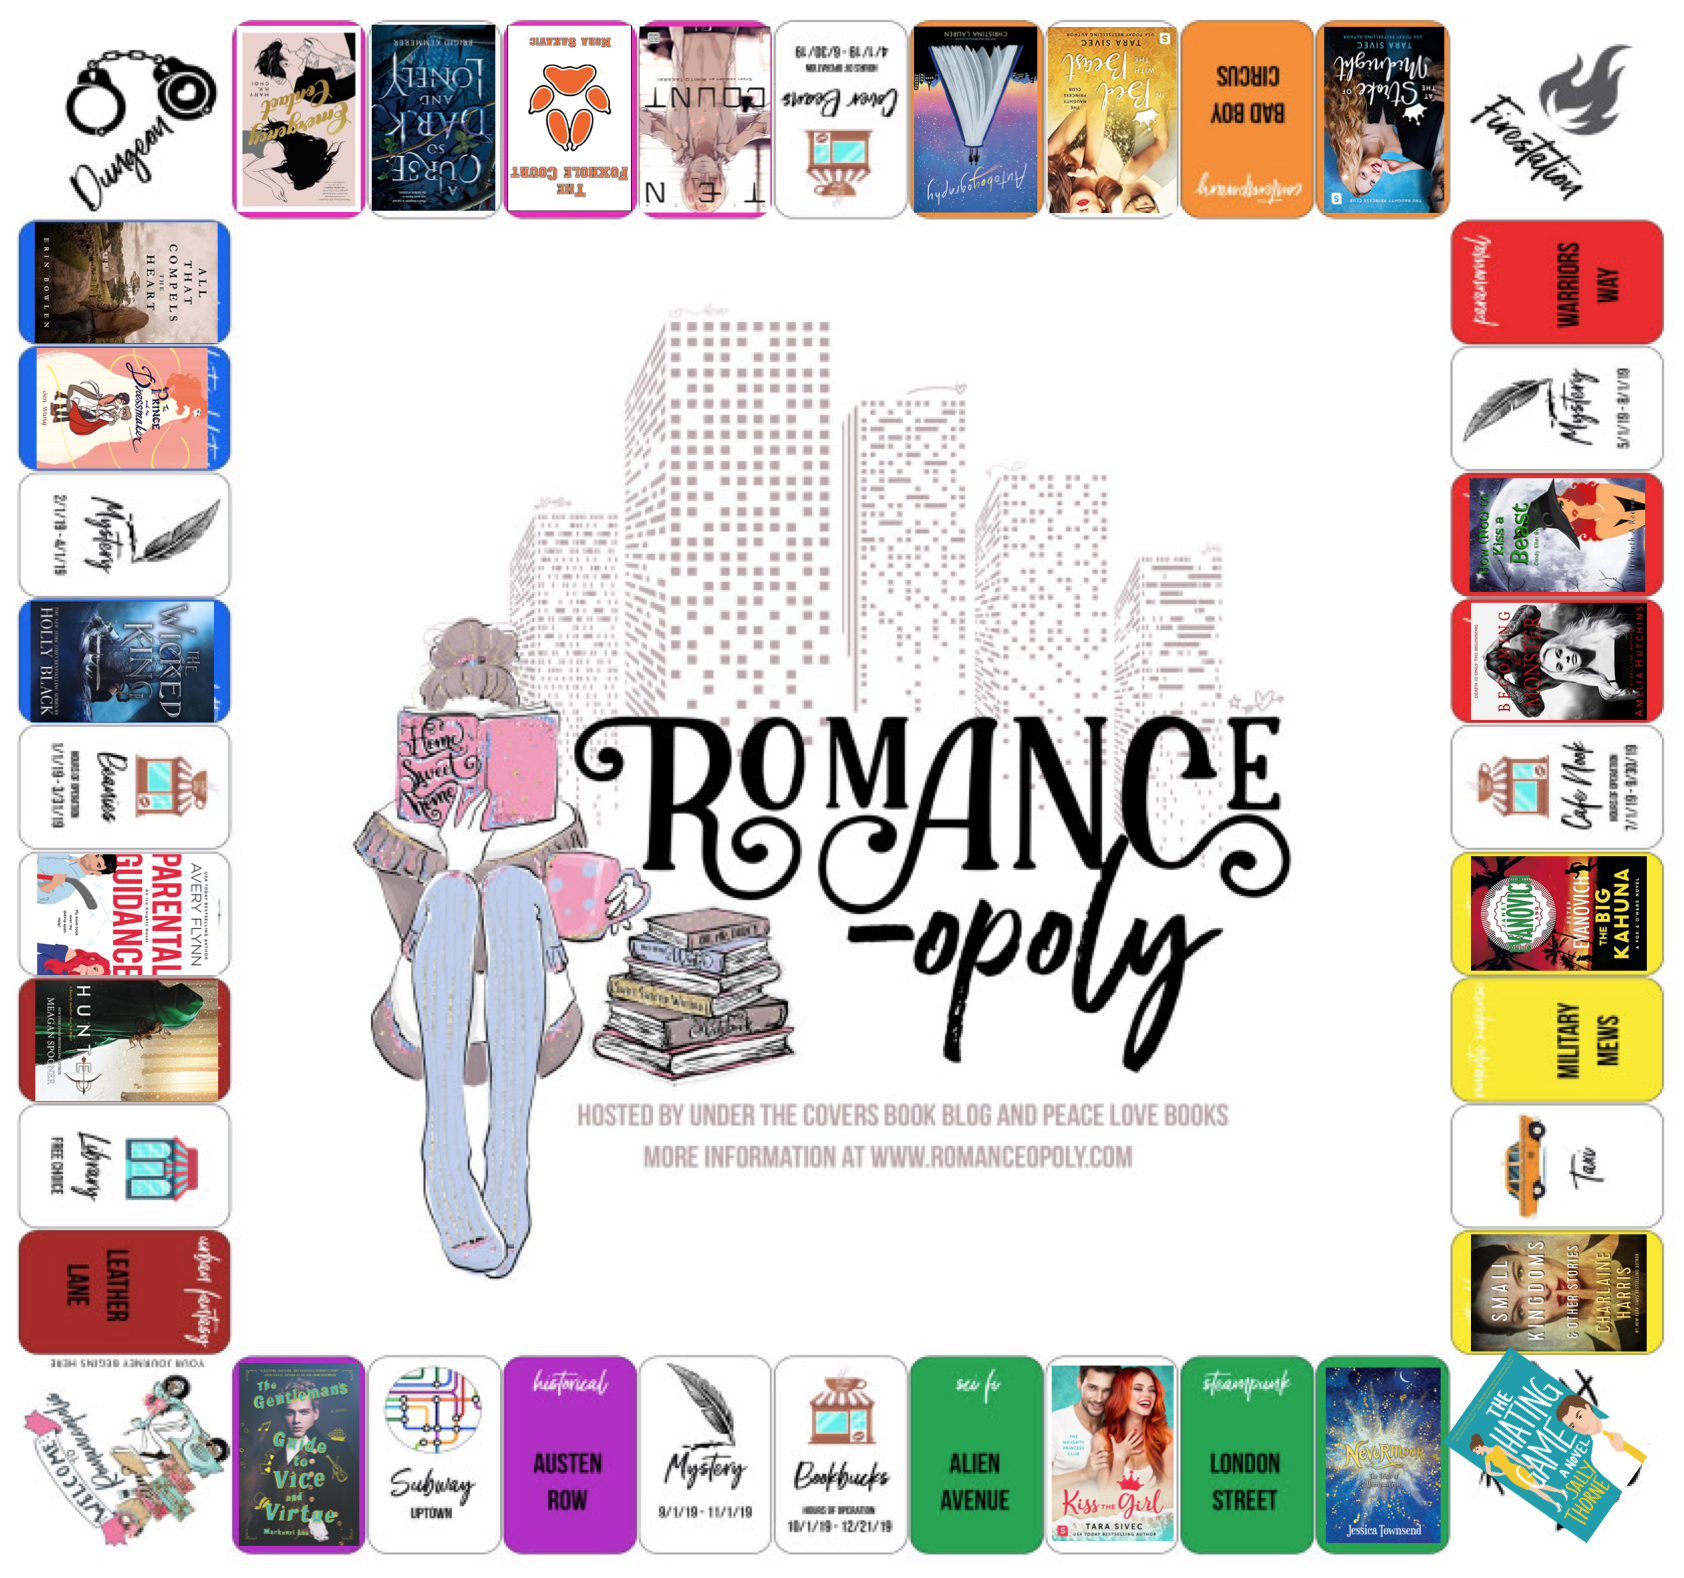 Romance-opoly challenge tracker, progress as at end June 2019